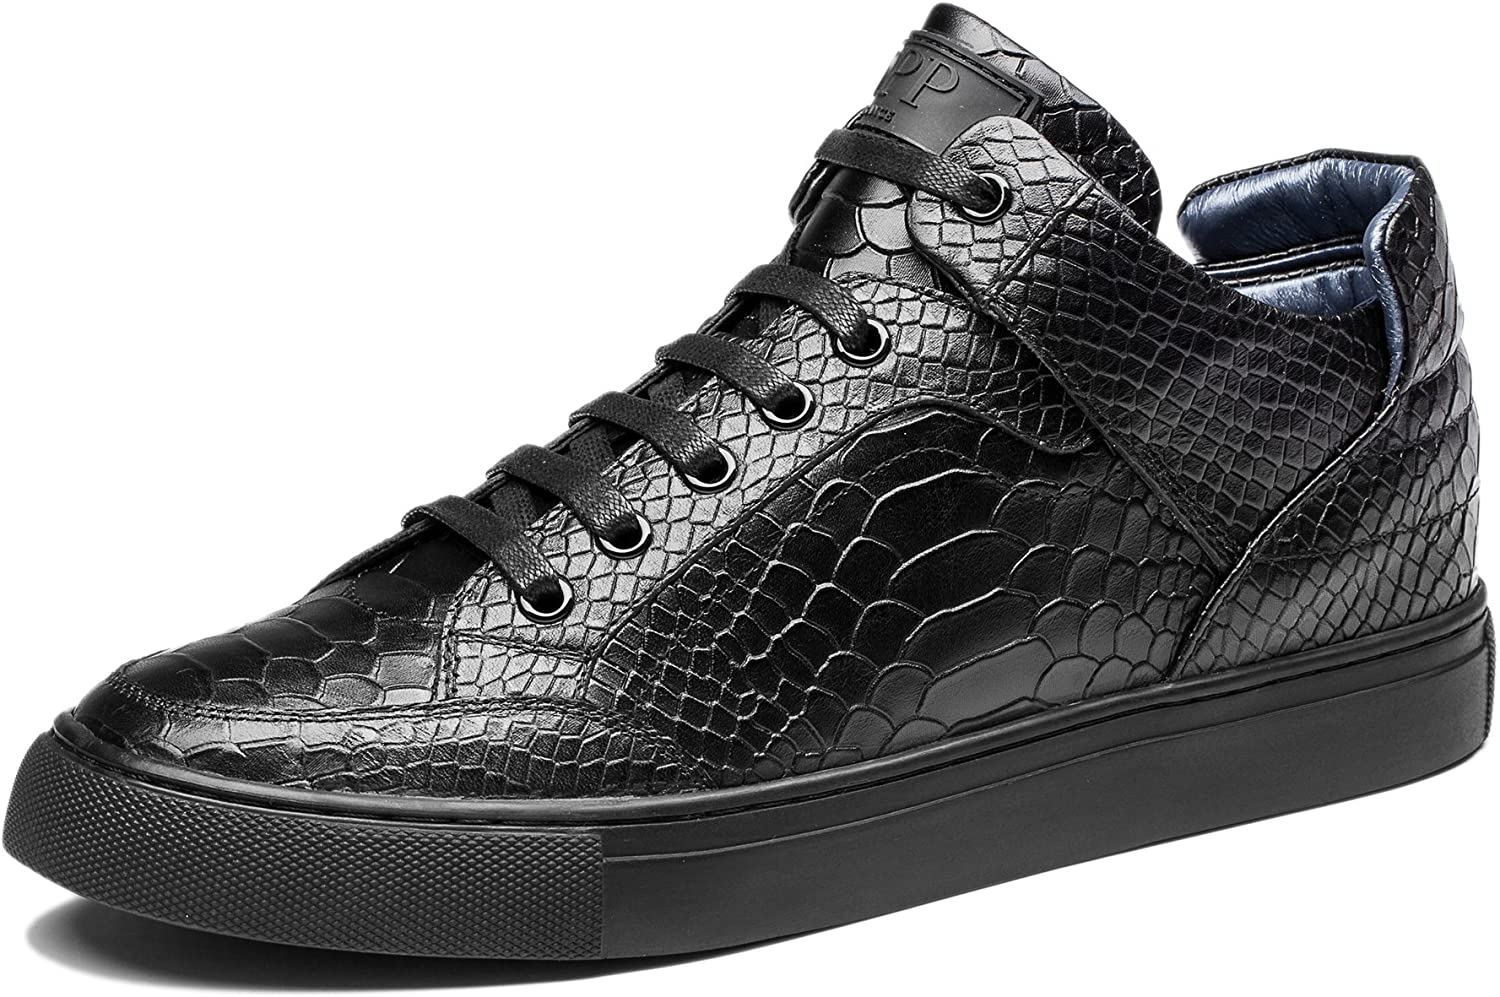 OPP Mens Leather High Top Trainers